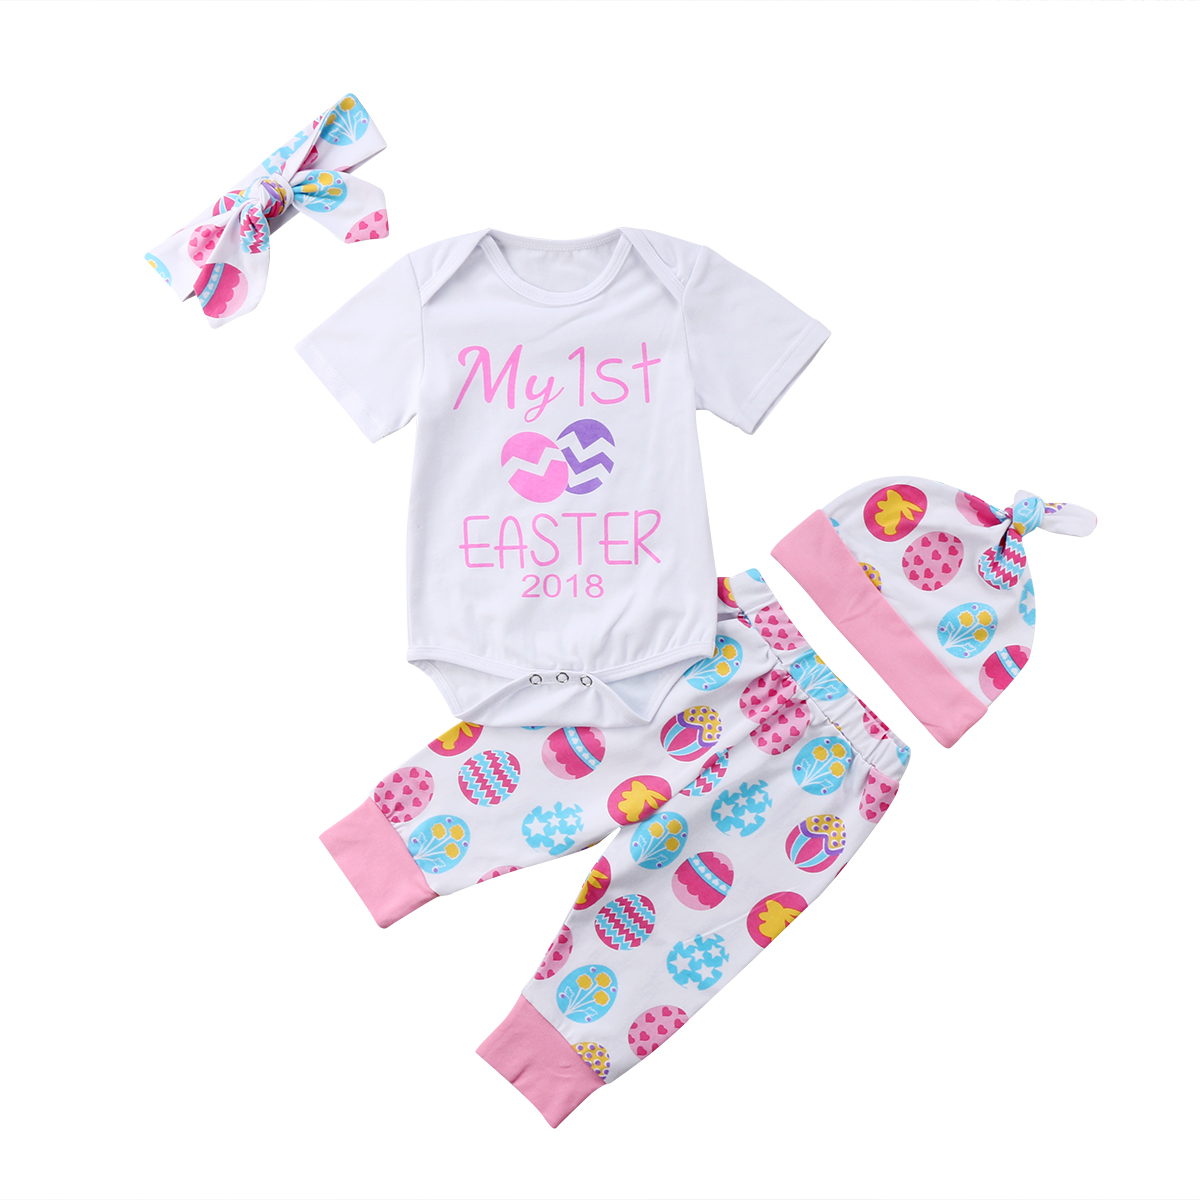 New Casual Lovely Newborn Baby Girls Clothes My 1st Easter Clothes Romper Leggings Pants Hat Headband Set